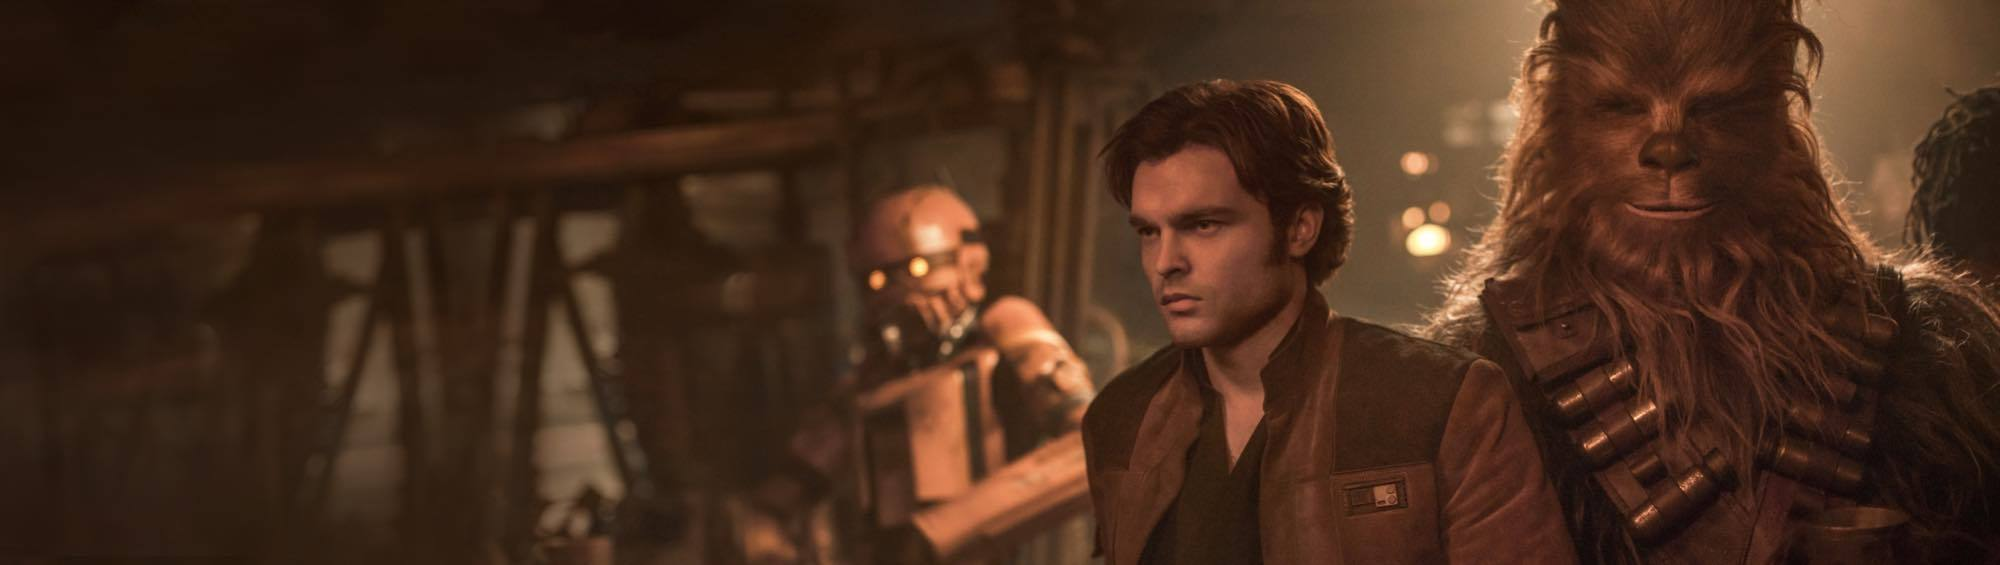 Solo: A Star Wars Story | Article Showcase